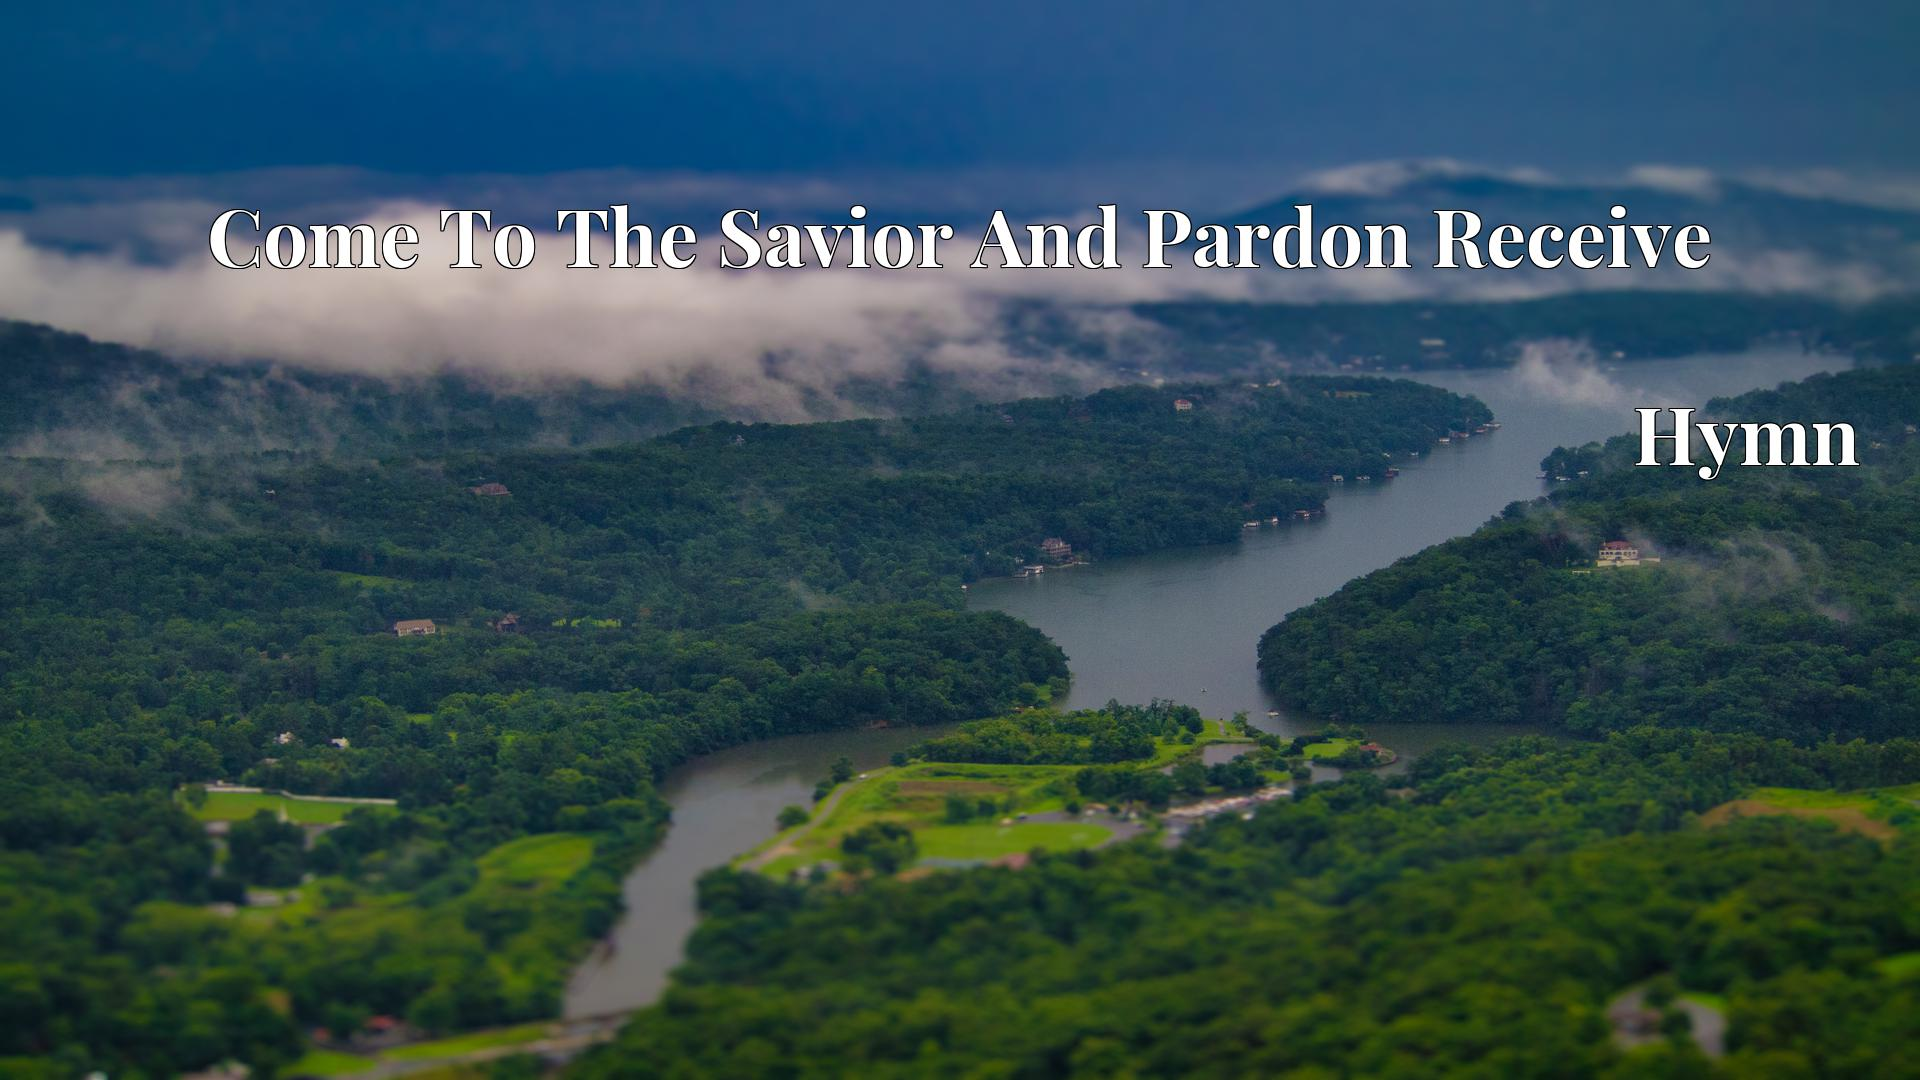 Come To The Savior And Pardon Receive - Hymn